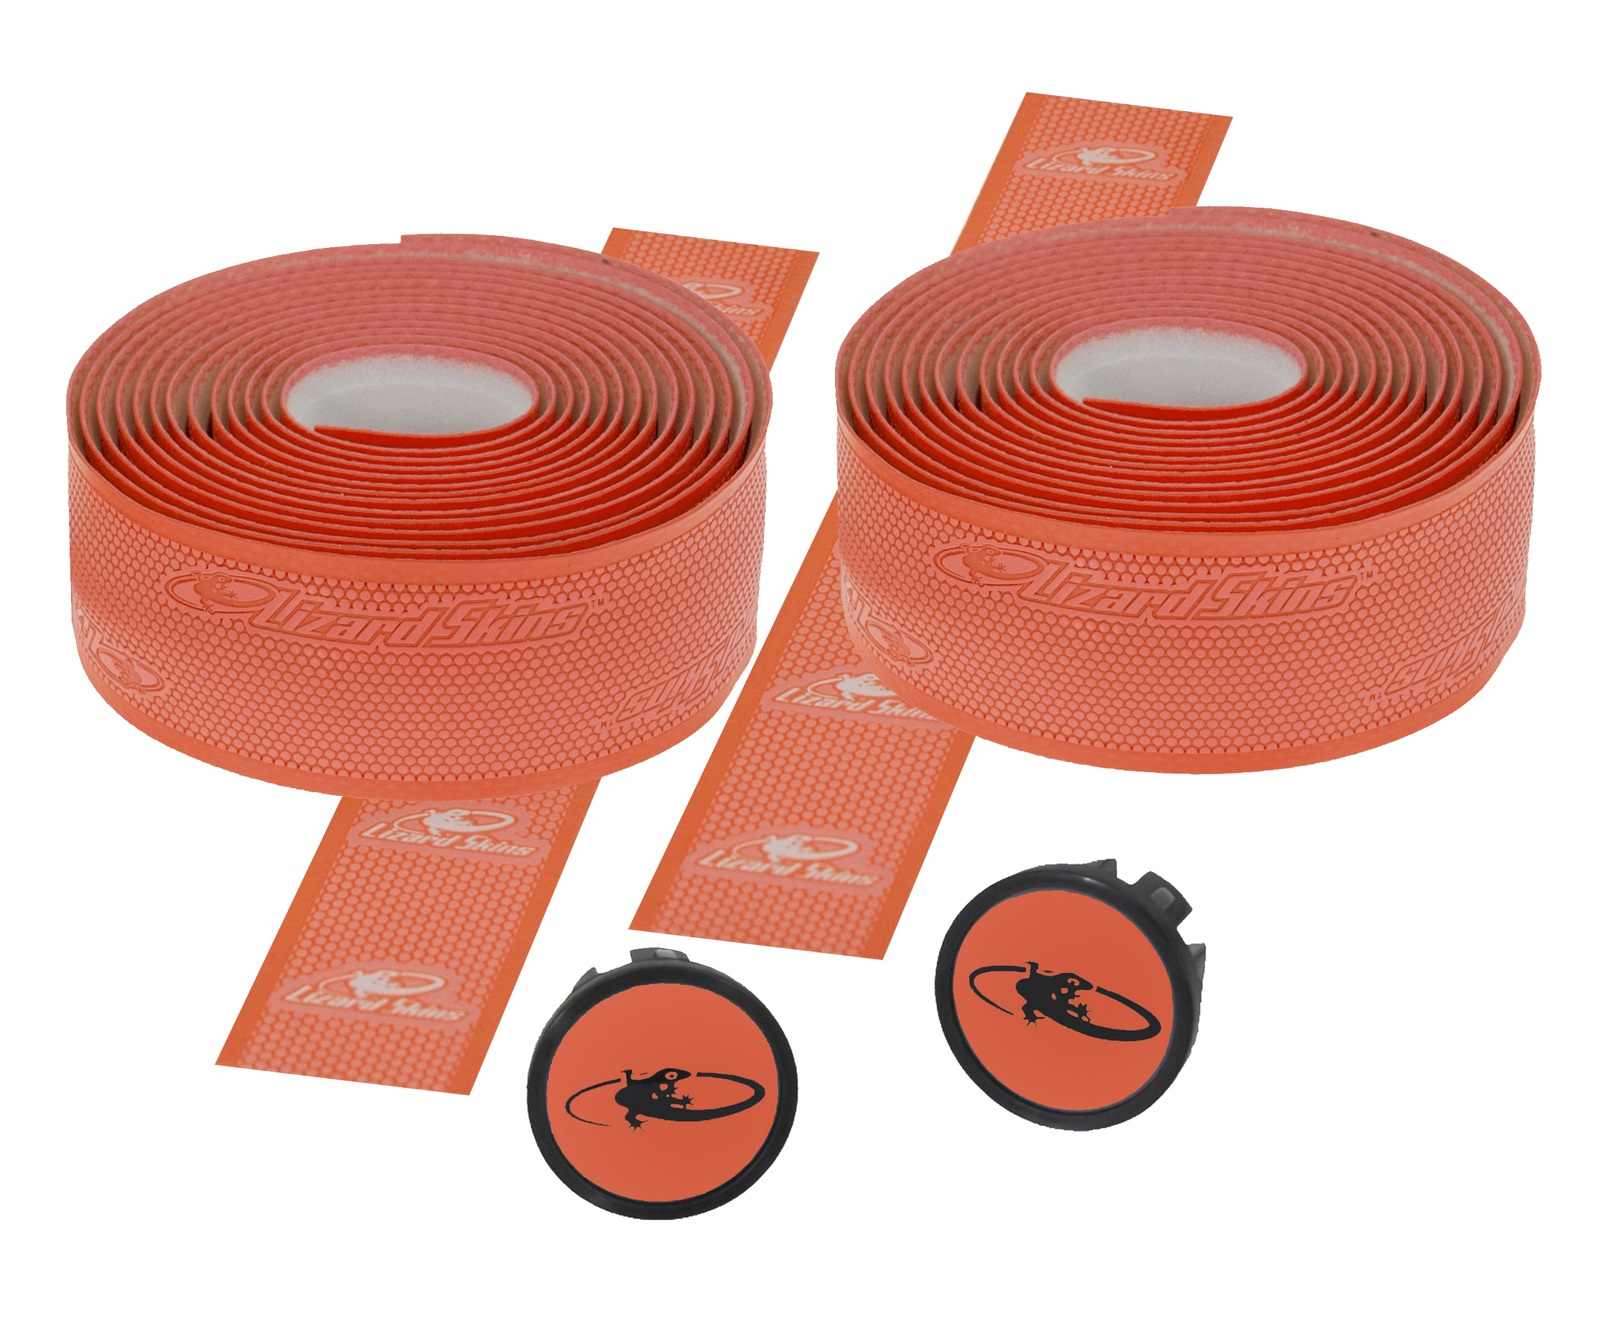 Lizardskins DSP 2.5 Handlebar Tape 2.5x208mm - Orange